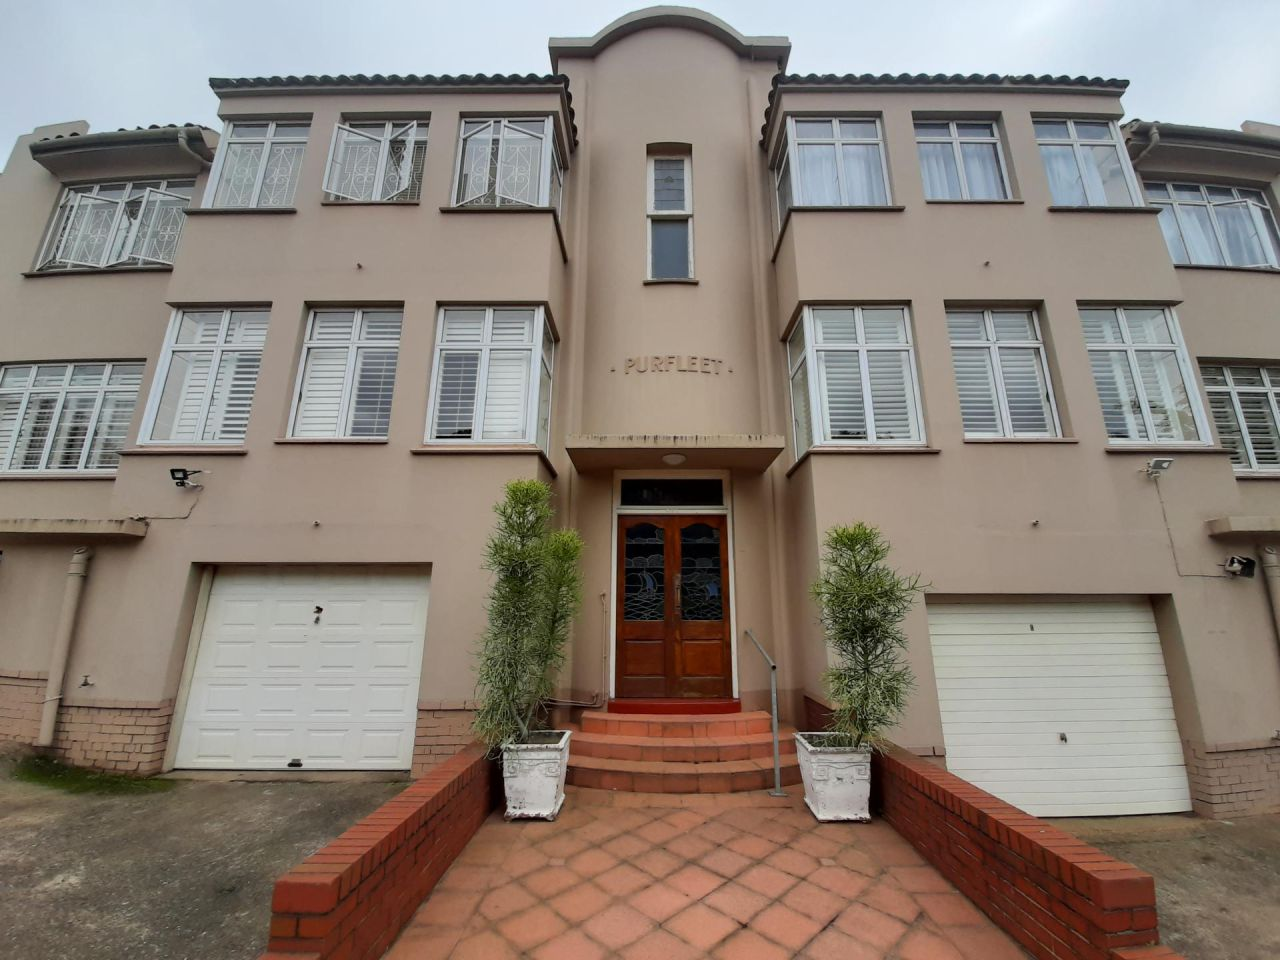 3 Bedroom apartment to rent in Bulwer, Durban